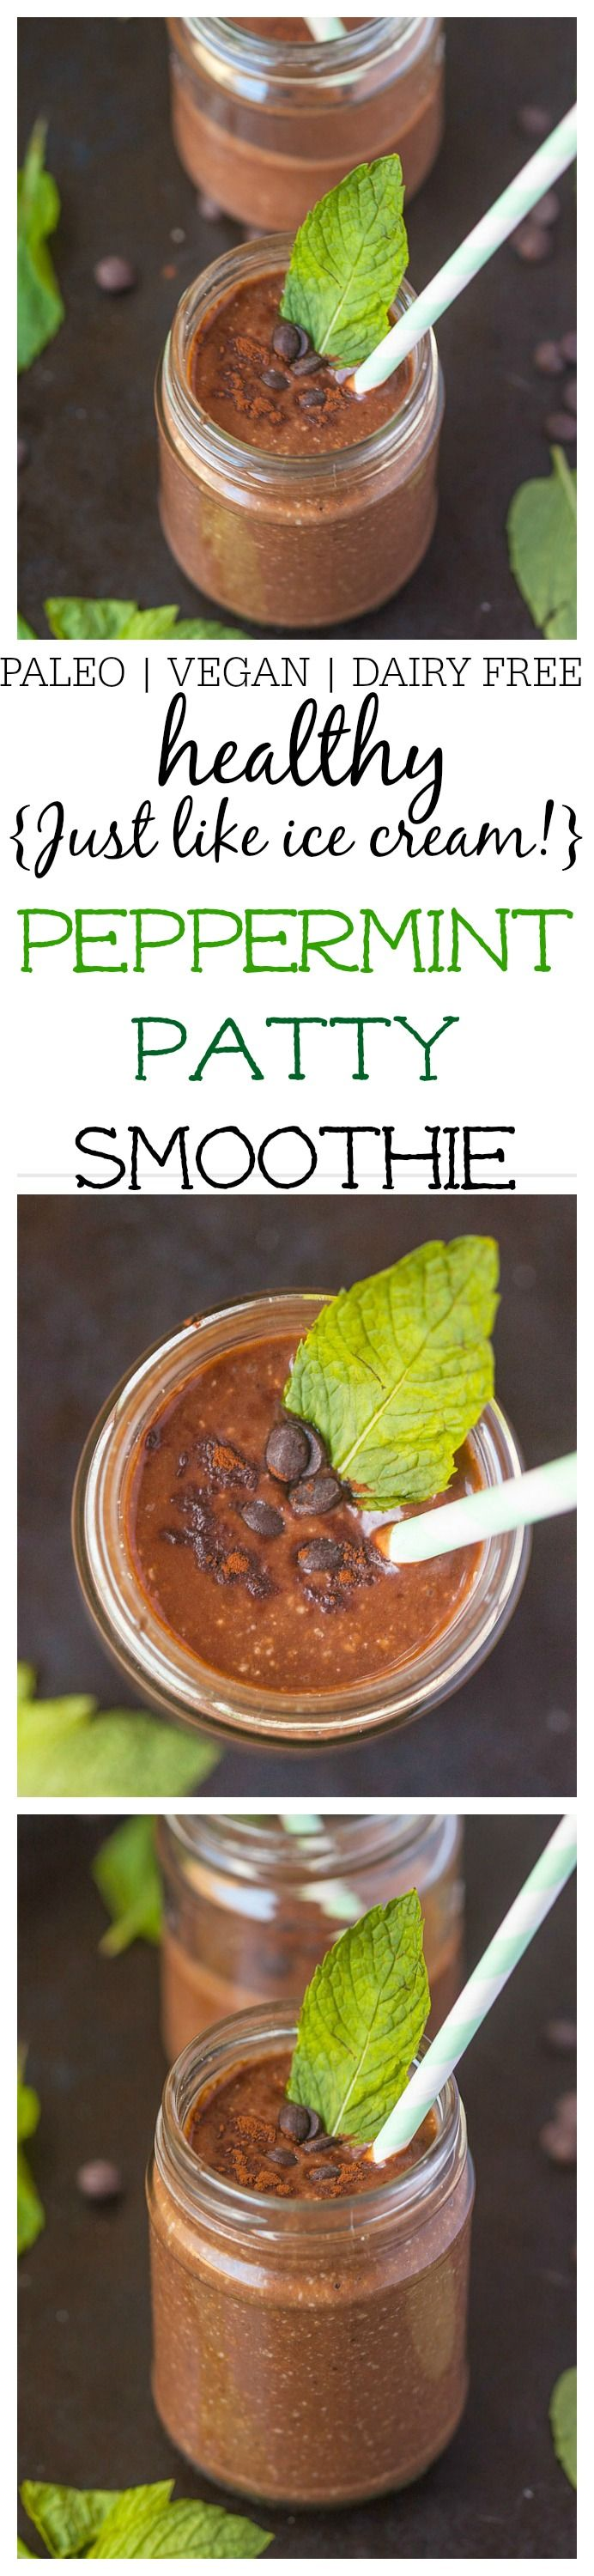 Healthy {just like ICE CREAM!} Peppermint Patty Smoothie- A quick and easy smoothie recipe which tastes like a peppermint patty but filled with superfood! Naturally vegan, dairy free, gluten free, sugar free and paleo- Creamy, thick and just like ice cream! @thebigmansworld - thebigmansworld.com